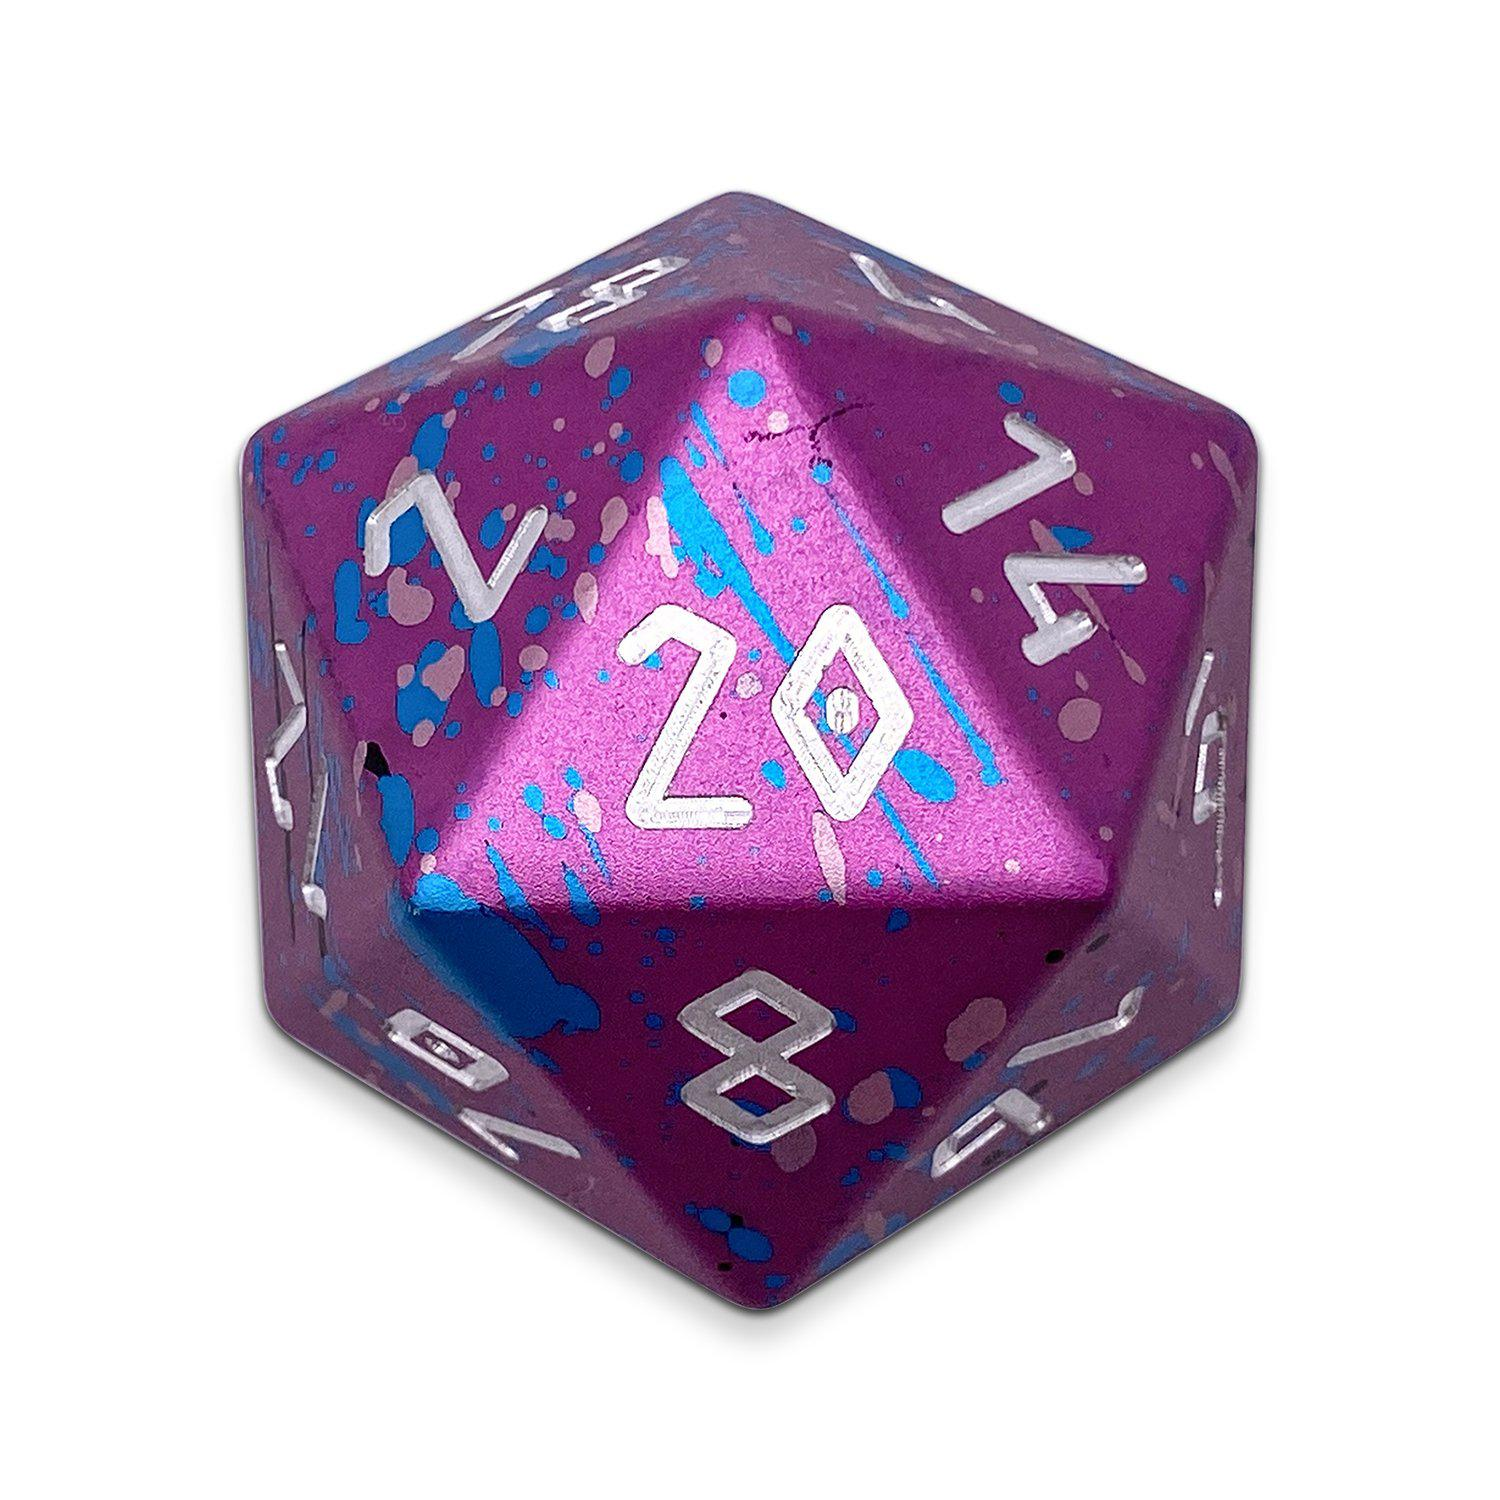 Cosmic Horror - Wondrous Boulder® 55mm D20 6063 Aircraft Grade Aluminum Metal Die